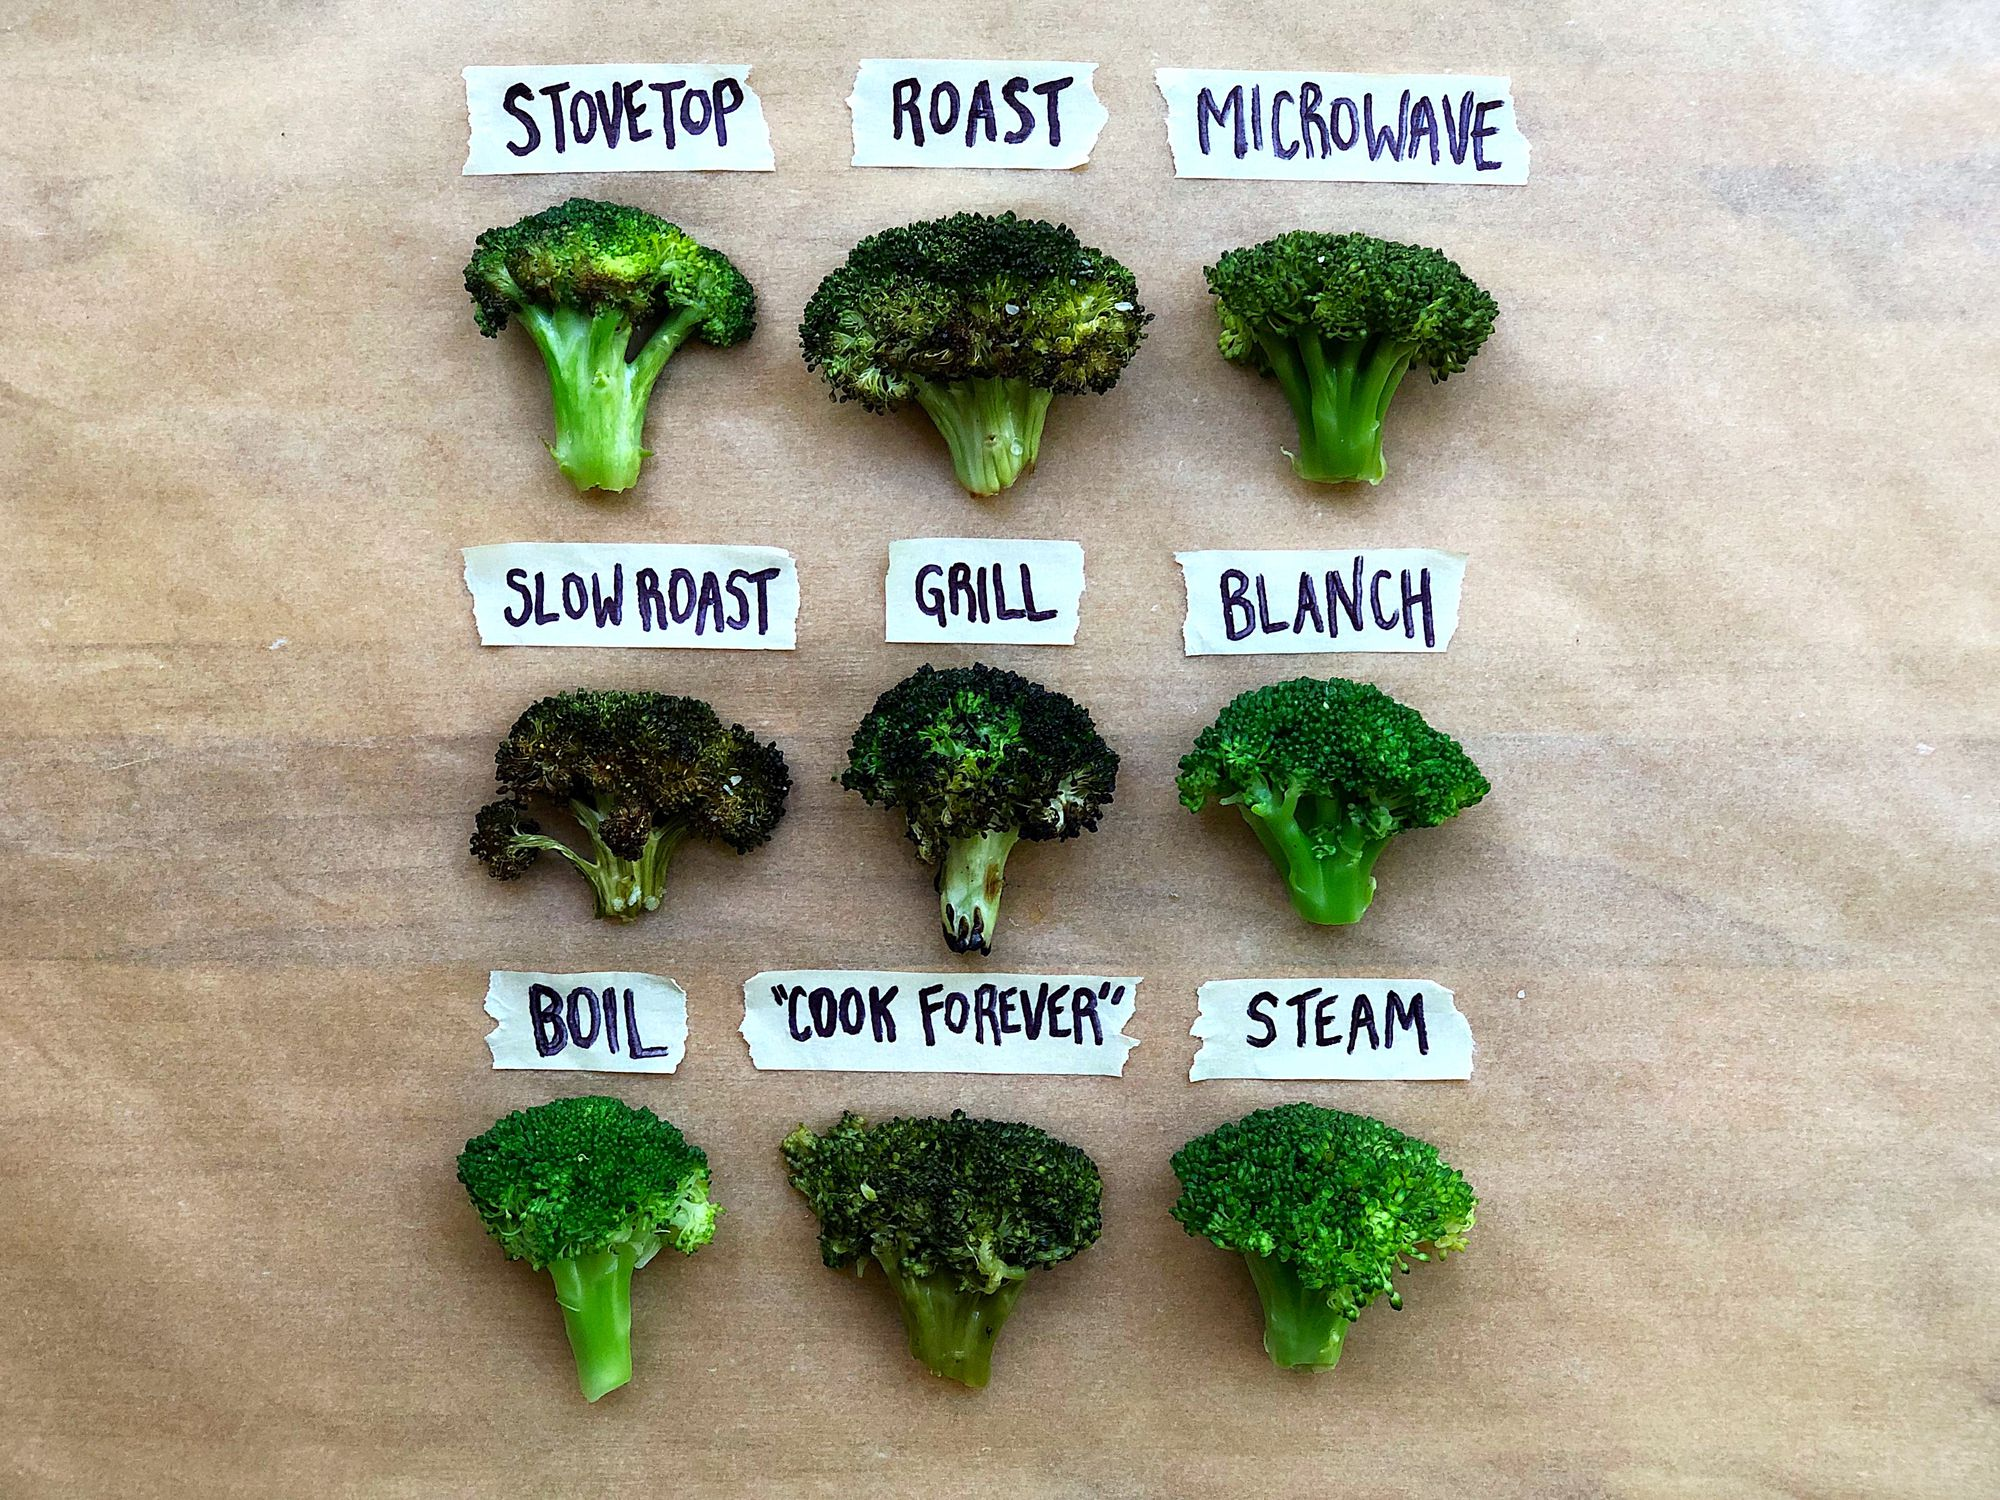 The Absolute Best Way to Cook Broccoli, According to So Many Tests